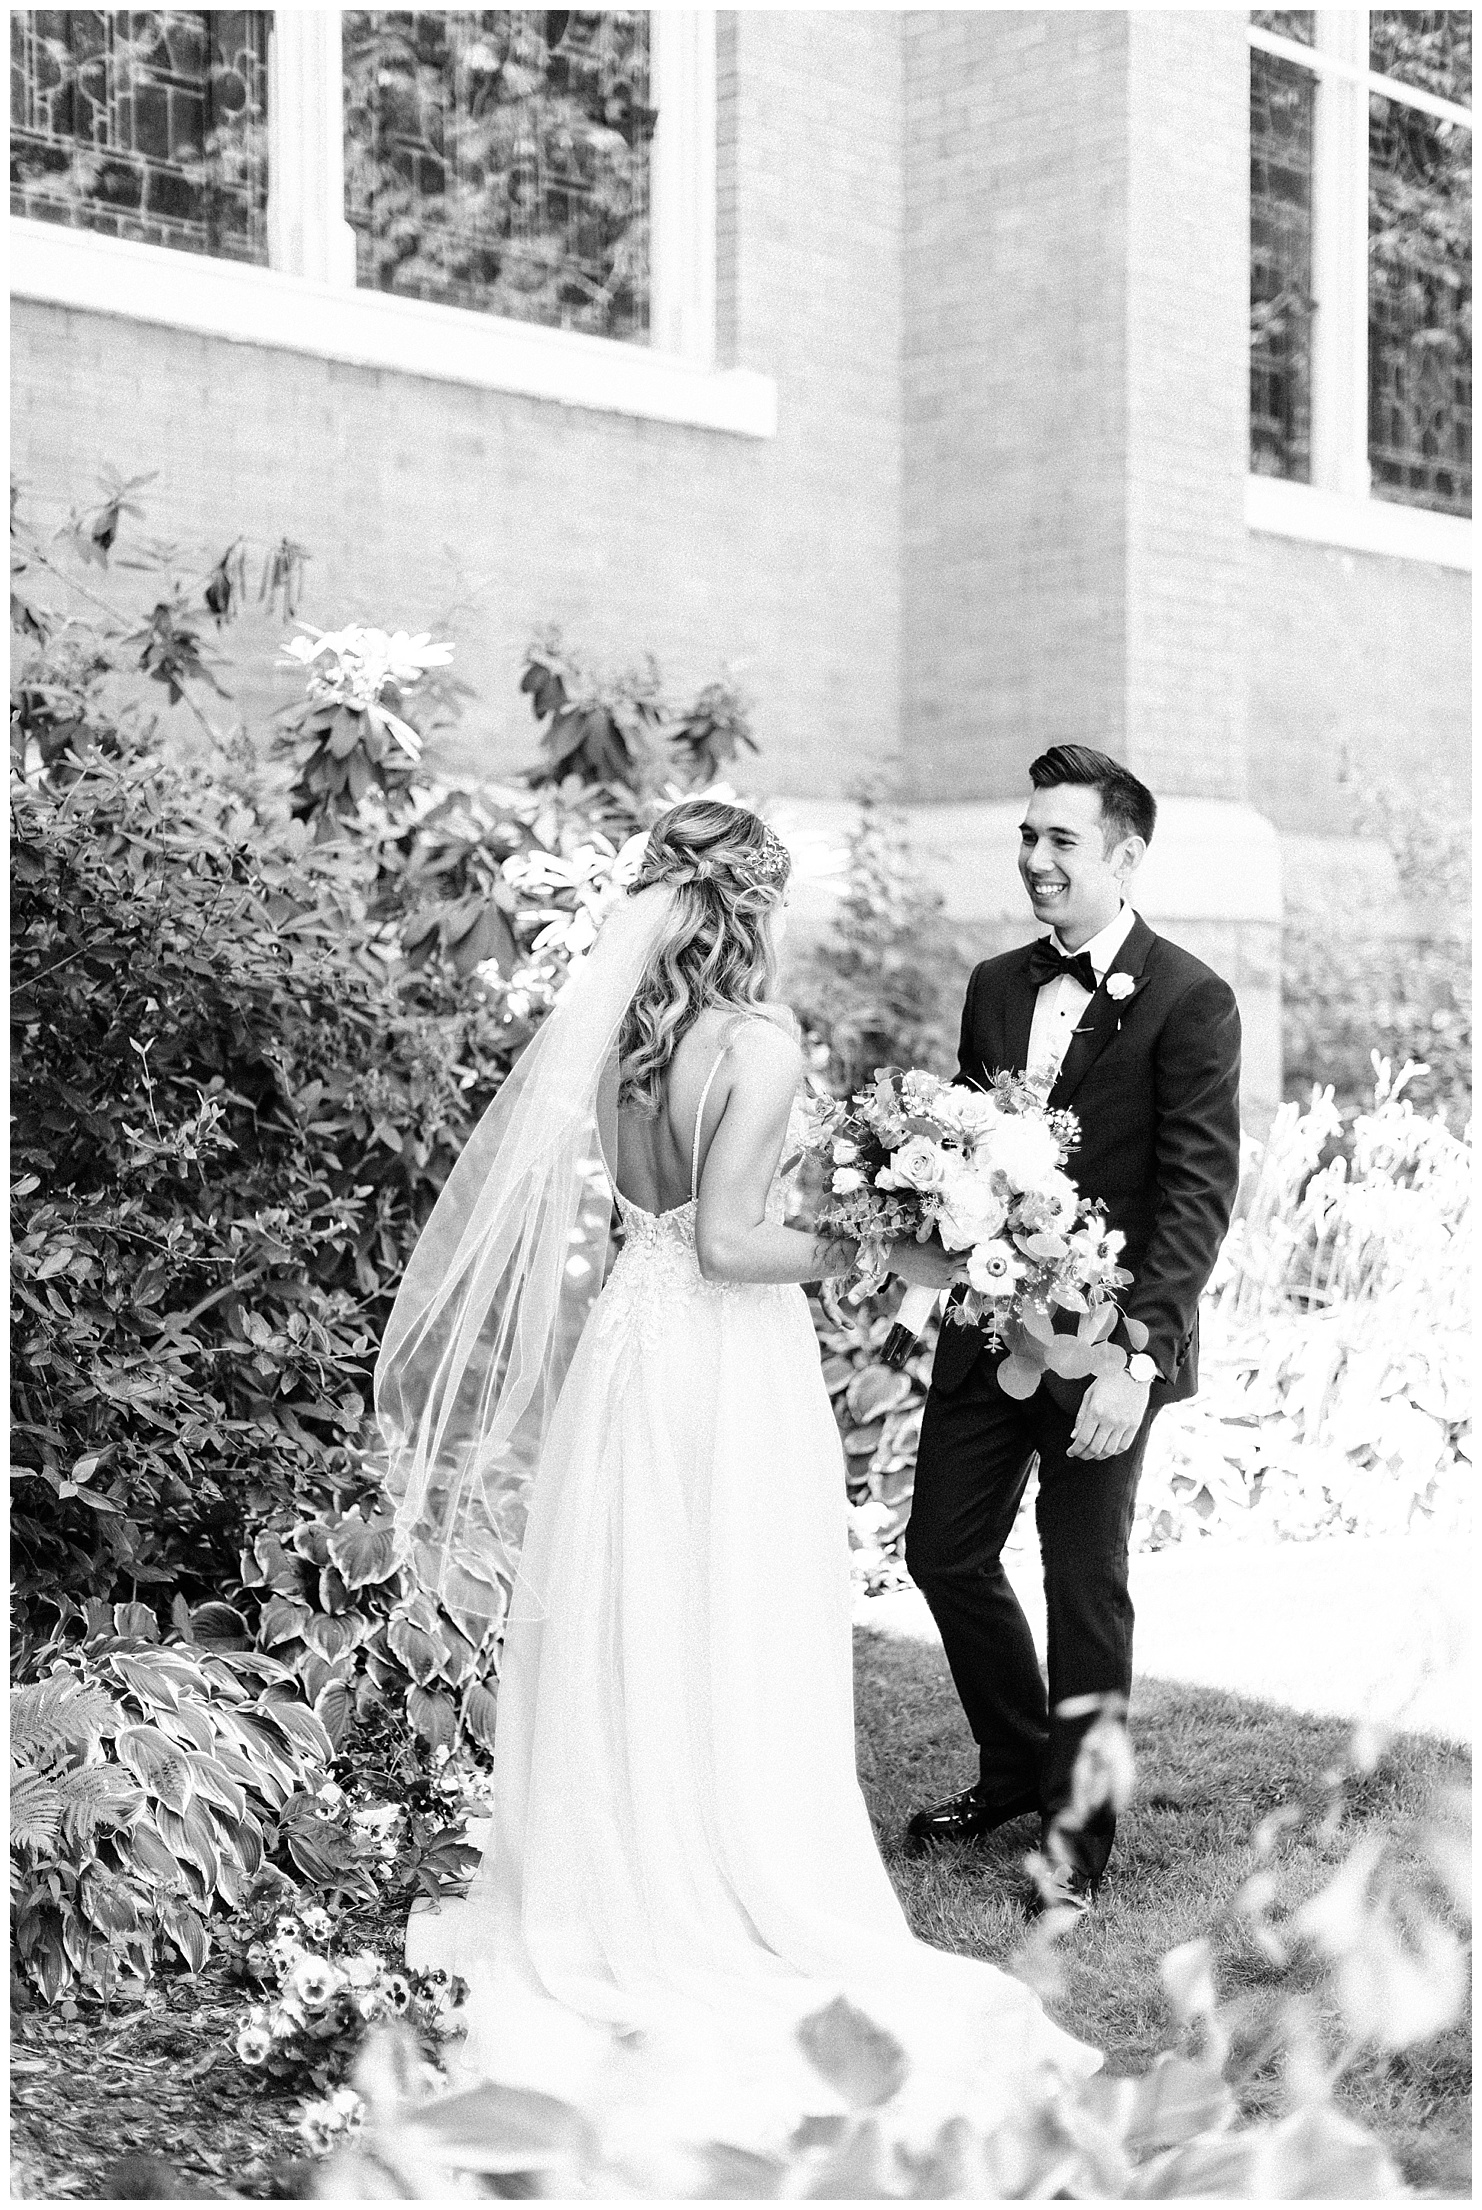 Black and White photo of a bride & groom at their first look on the lawn of St. Aloyius Cathedral in Spokane, WA by Forthright Photo